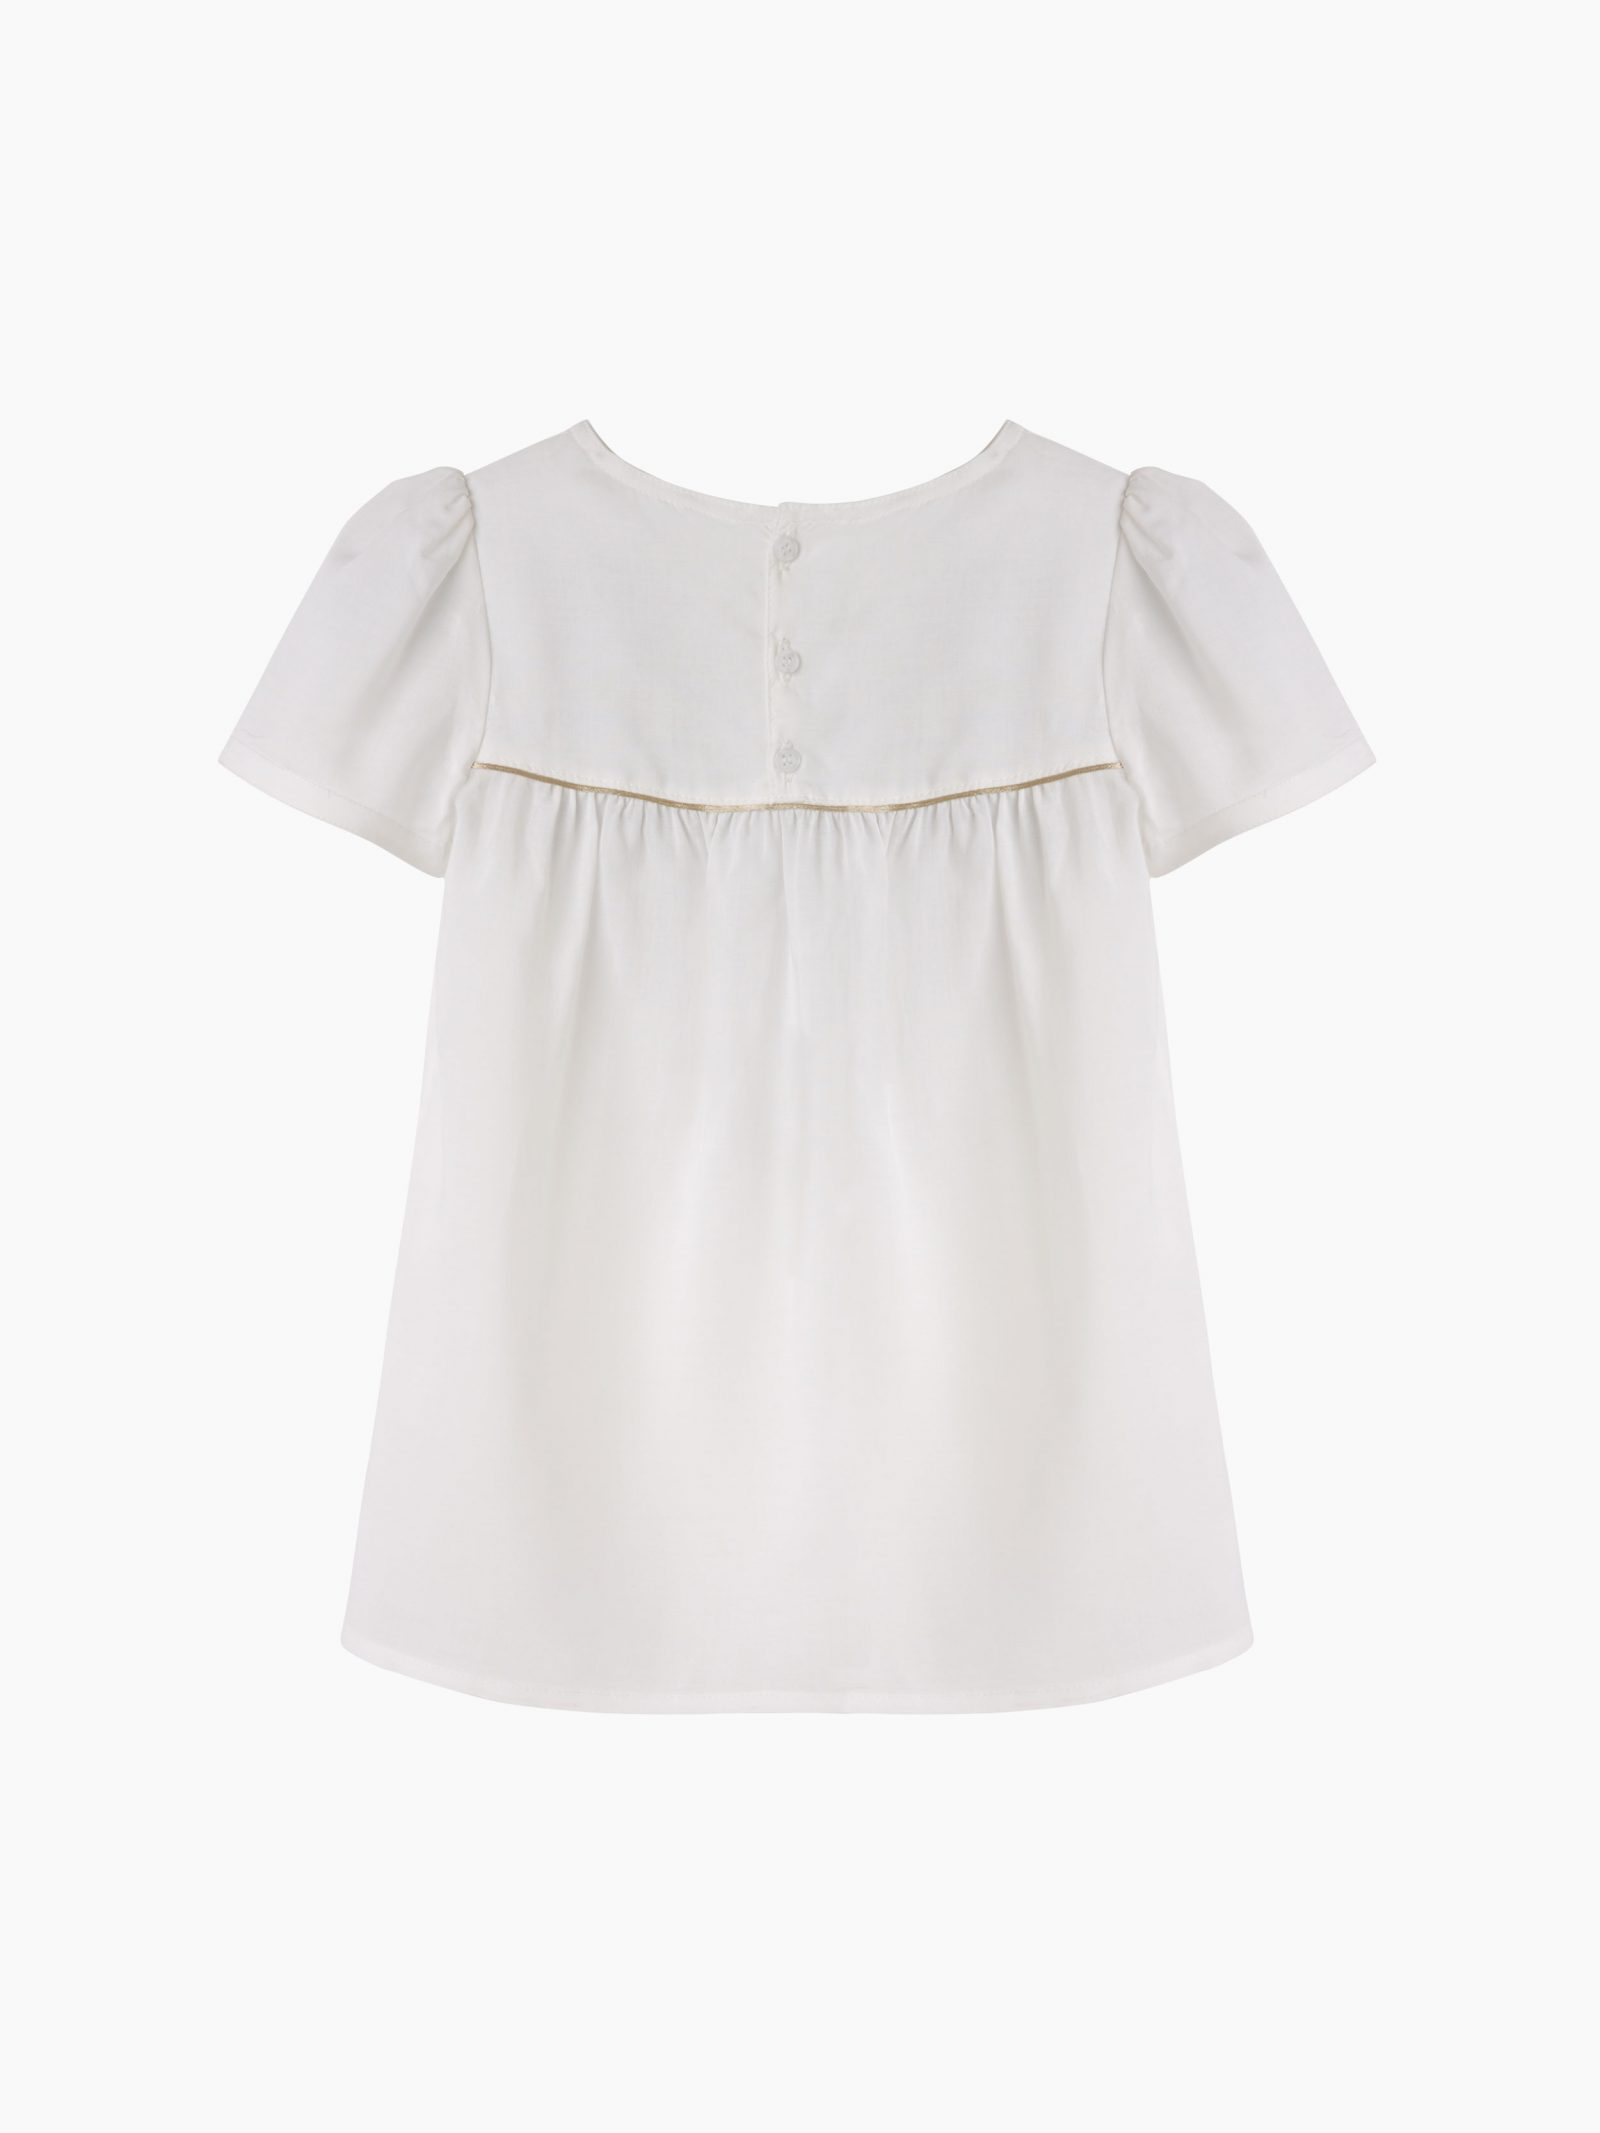 Girls ivory blouse with gold piping